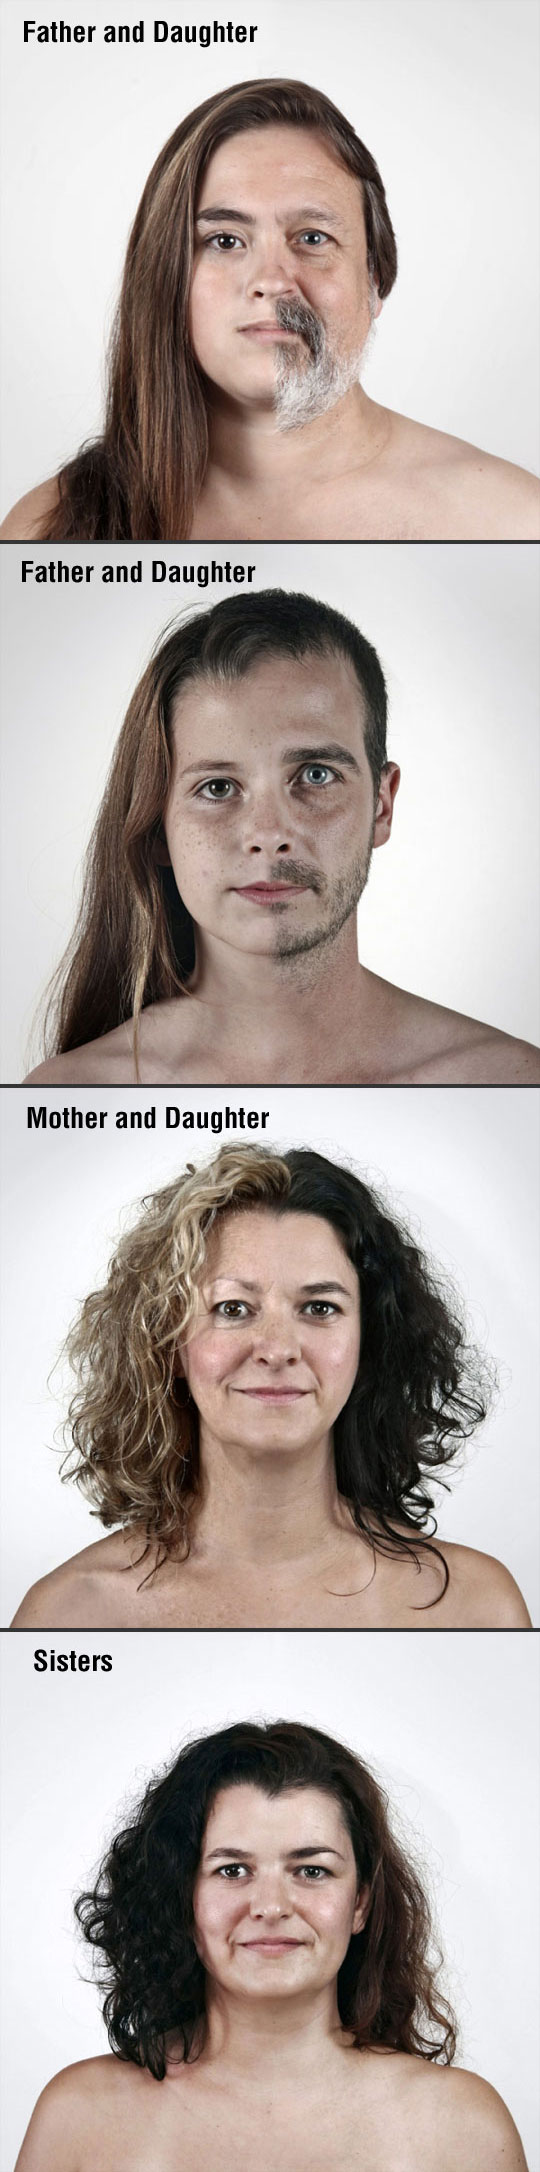 cool photographs of genetic similarities